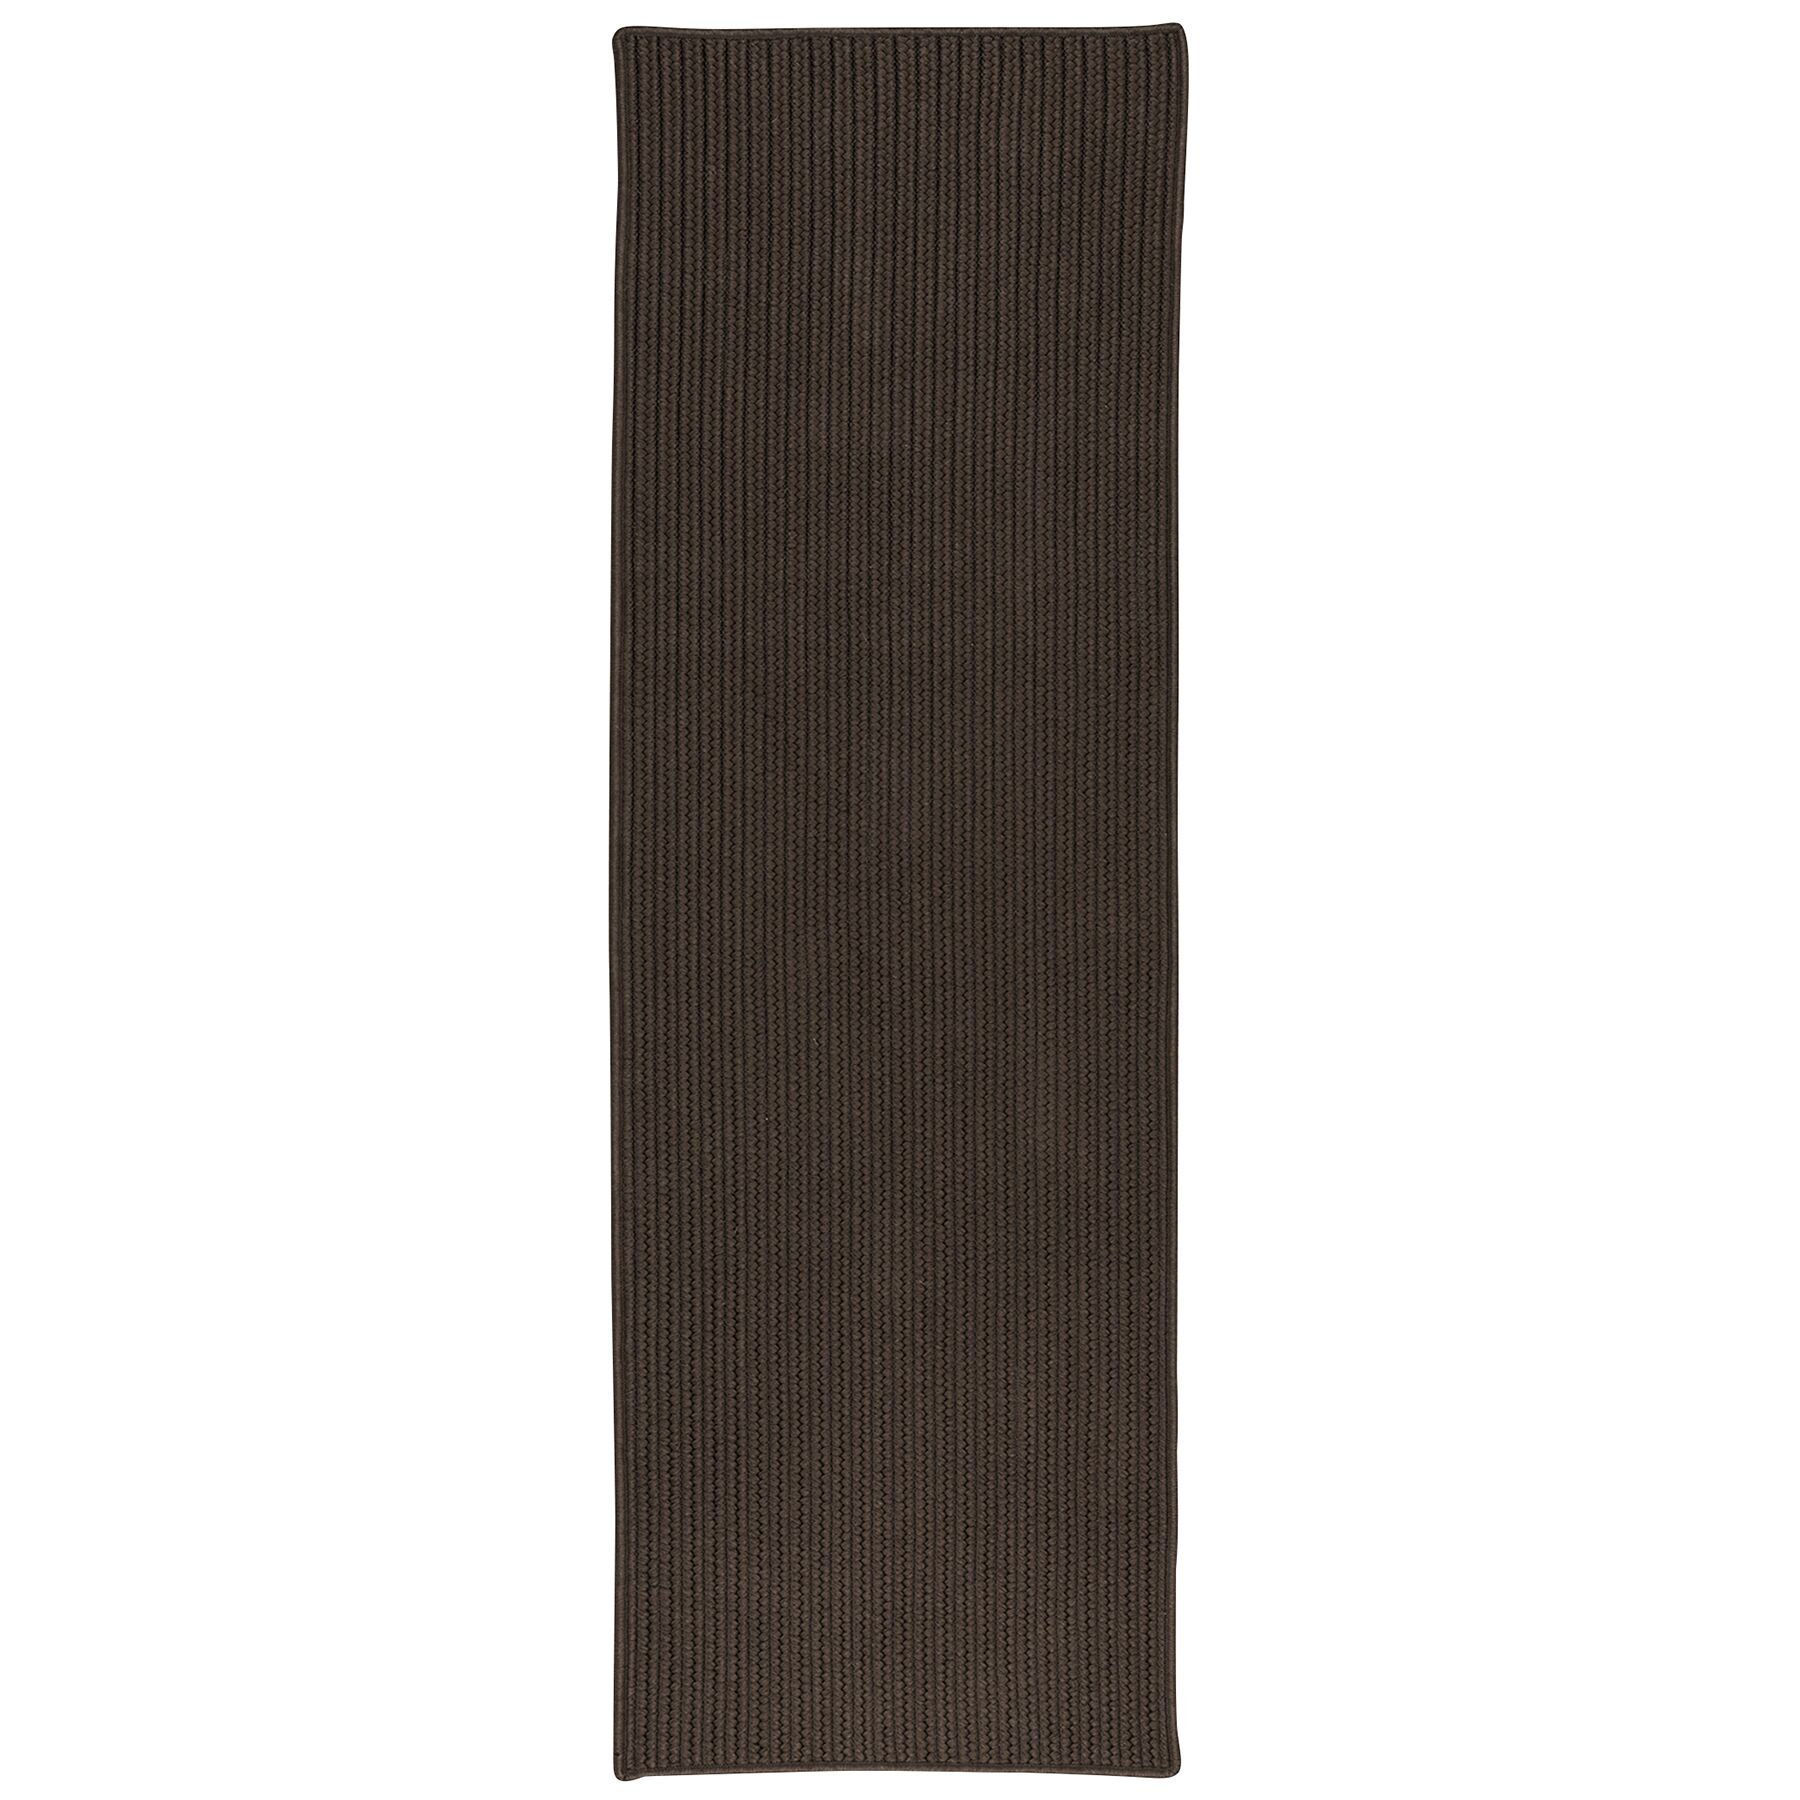 Rylie All-Purpose Mudroom Hand-Braided Brown Area Rug Rug Size: Runner 2' x 8'